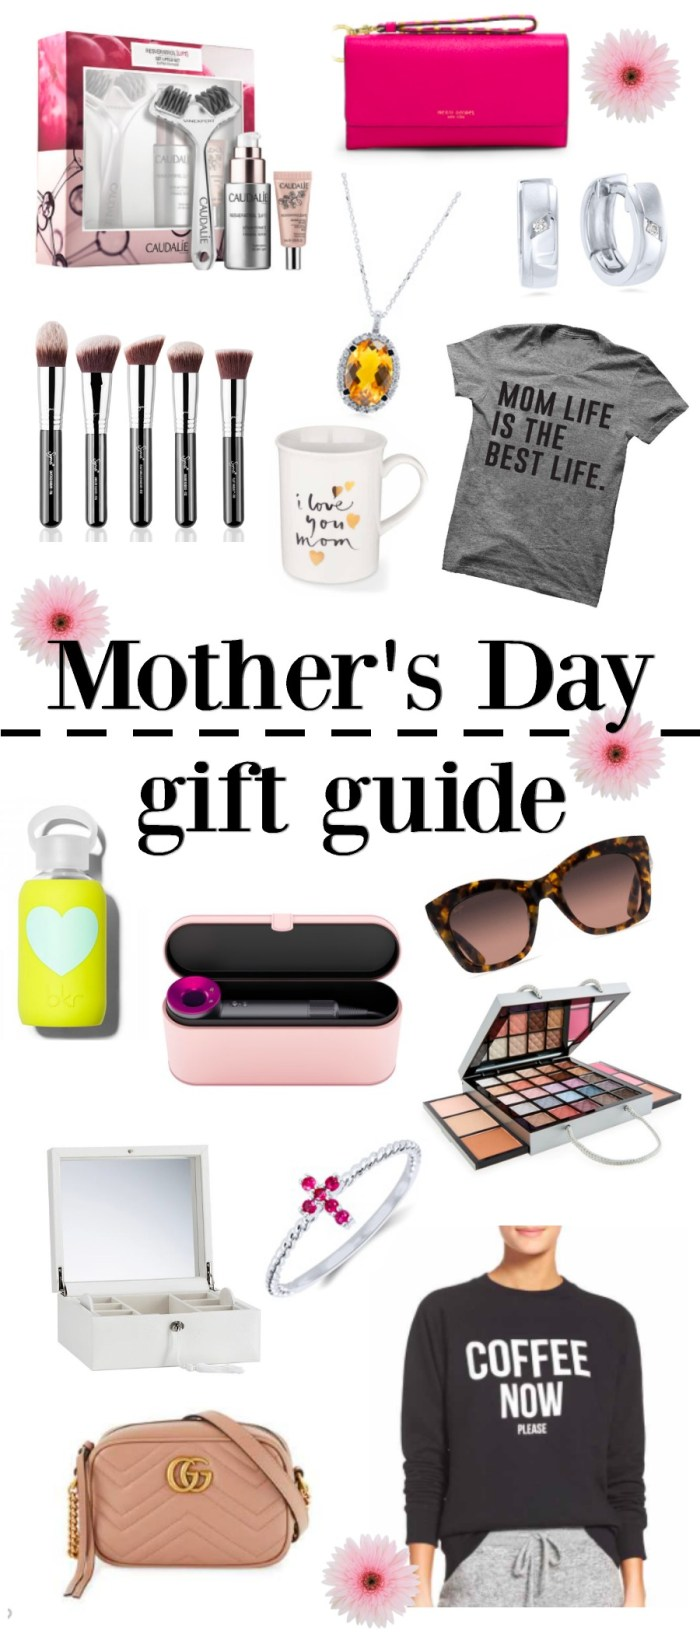 Mother's Day Gift ideas for any budget.